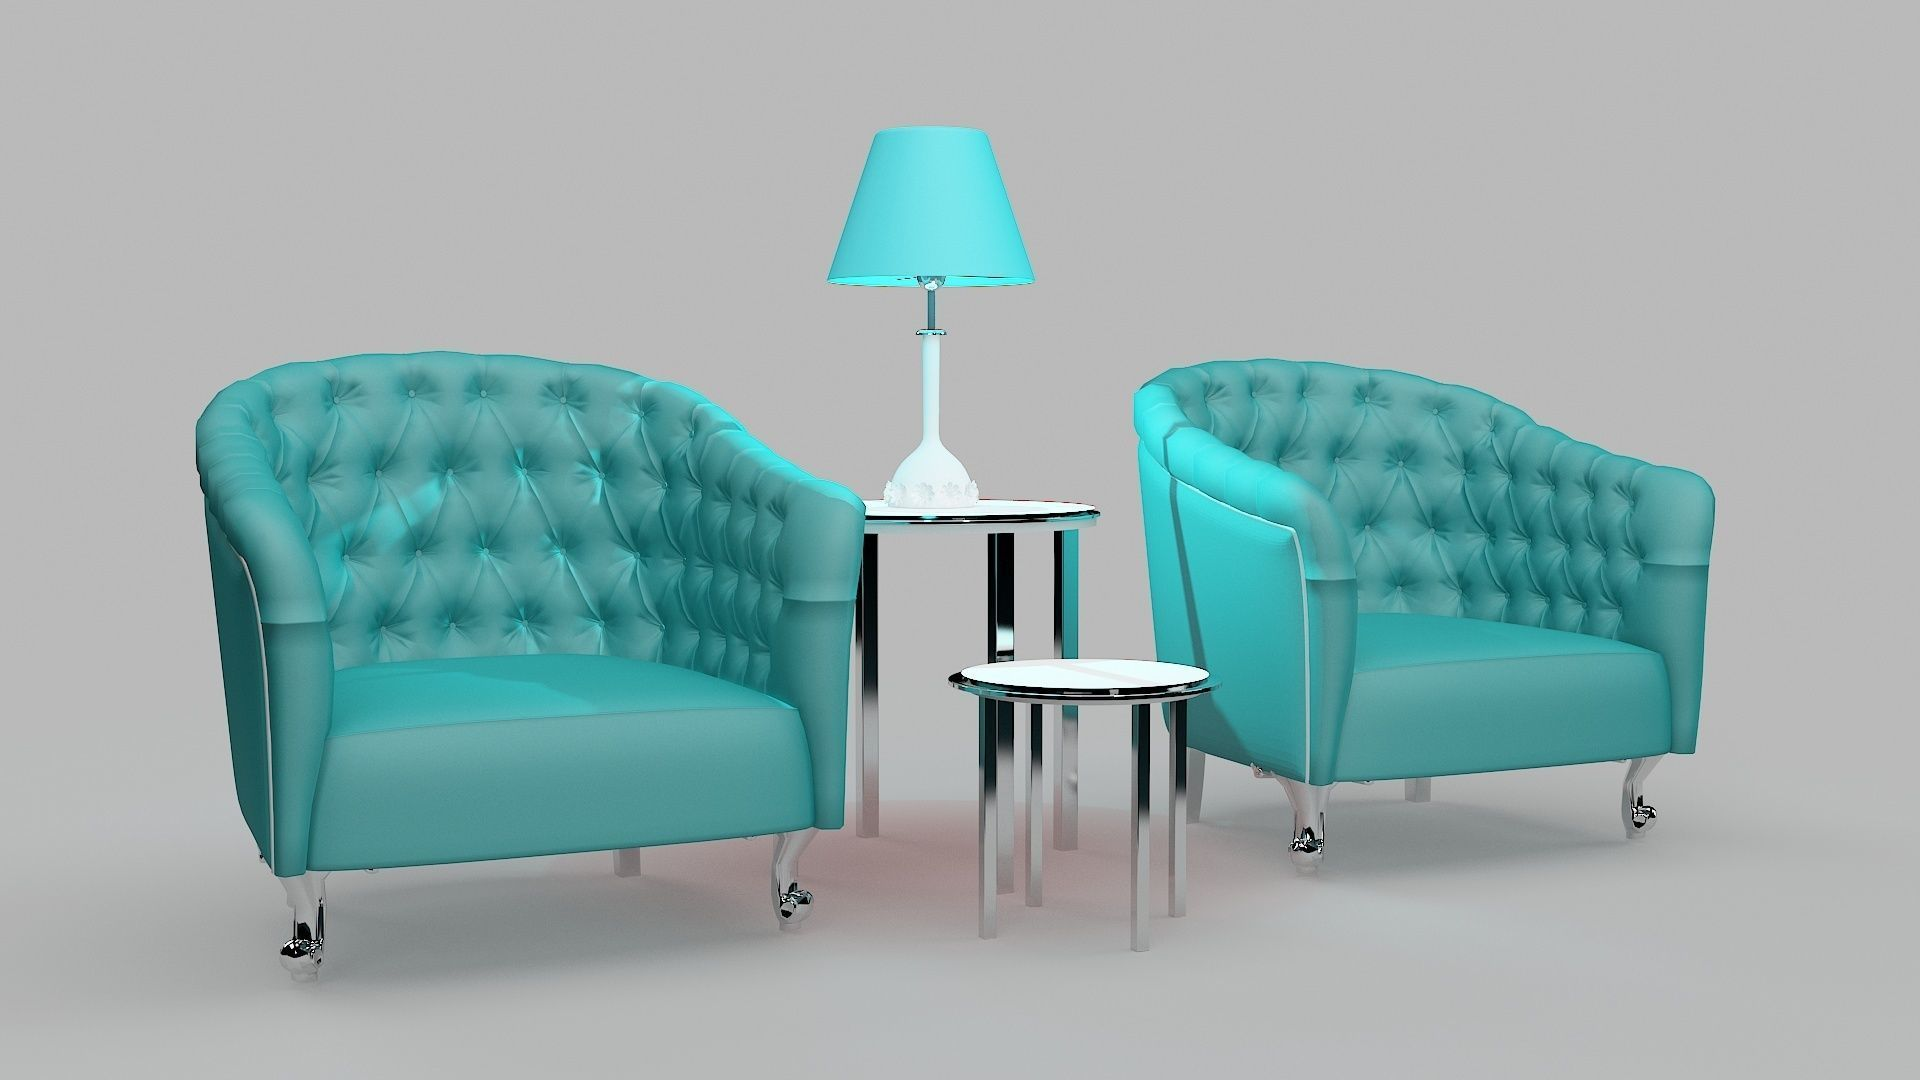 Chairs and lamp